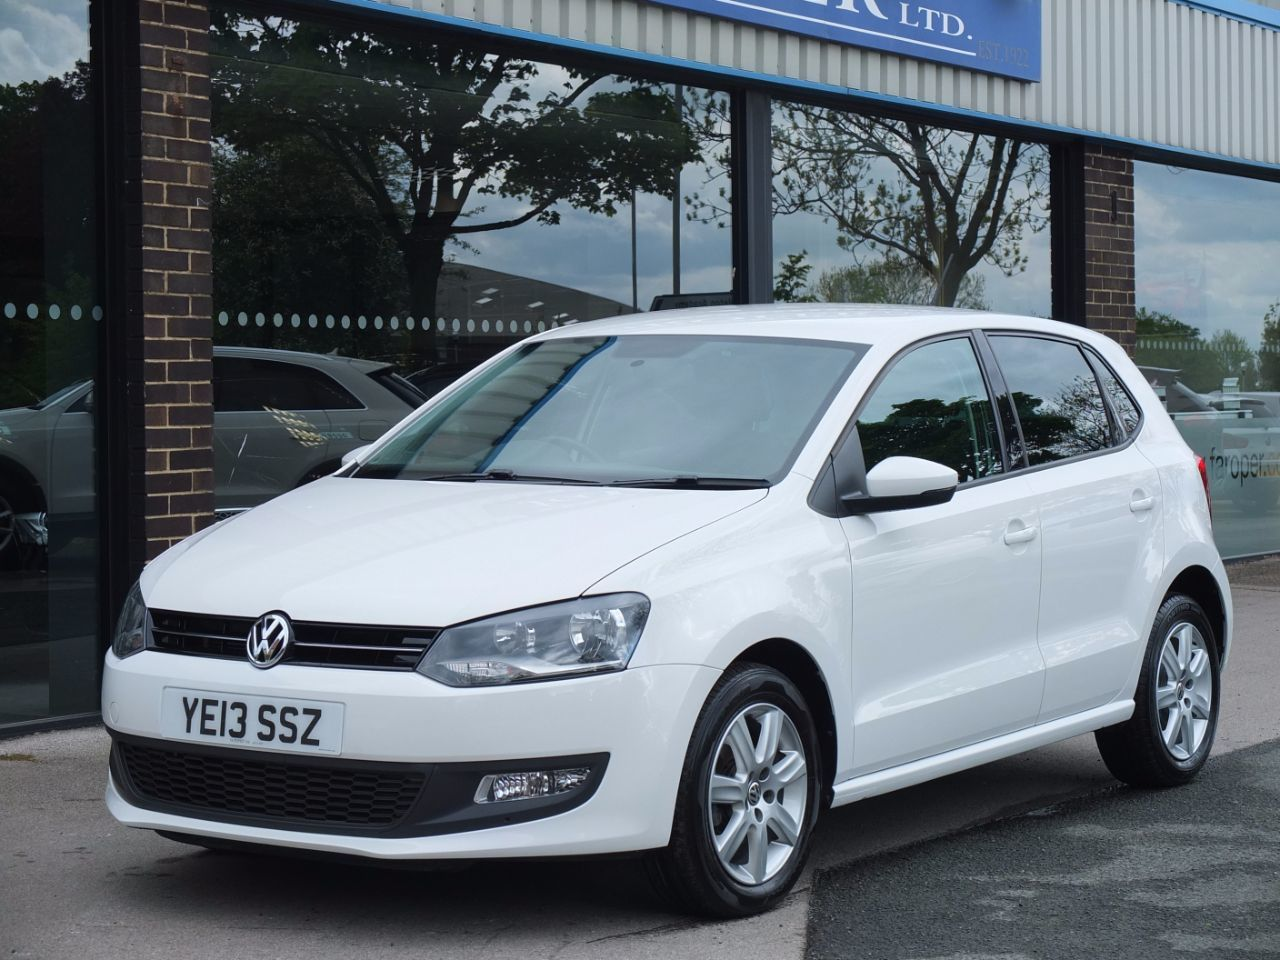 Volkswagen Polo 1.2 TDI Match Edition 5 door Hatchback Diesel Candy WhiteVolkswagen Polo 1.2 TDI Match Edition 5 door Hatchback Diesel Candy White at fa Roper Ltd Bradford